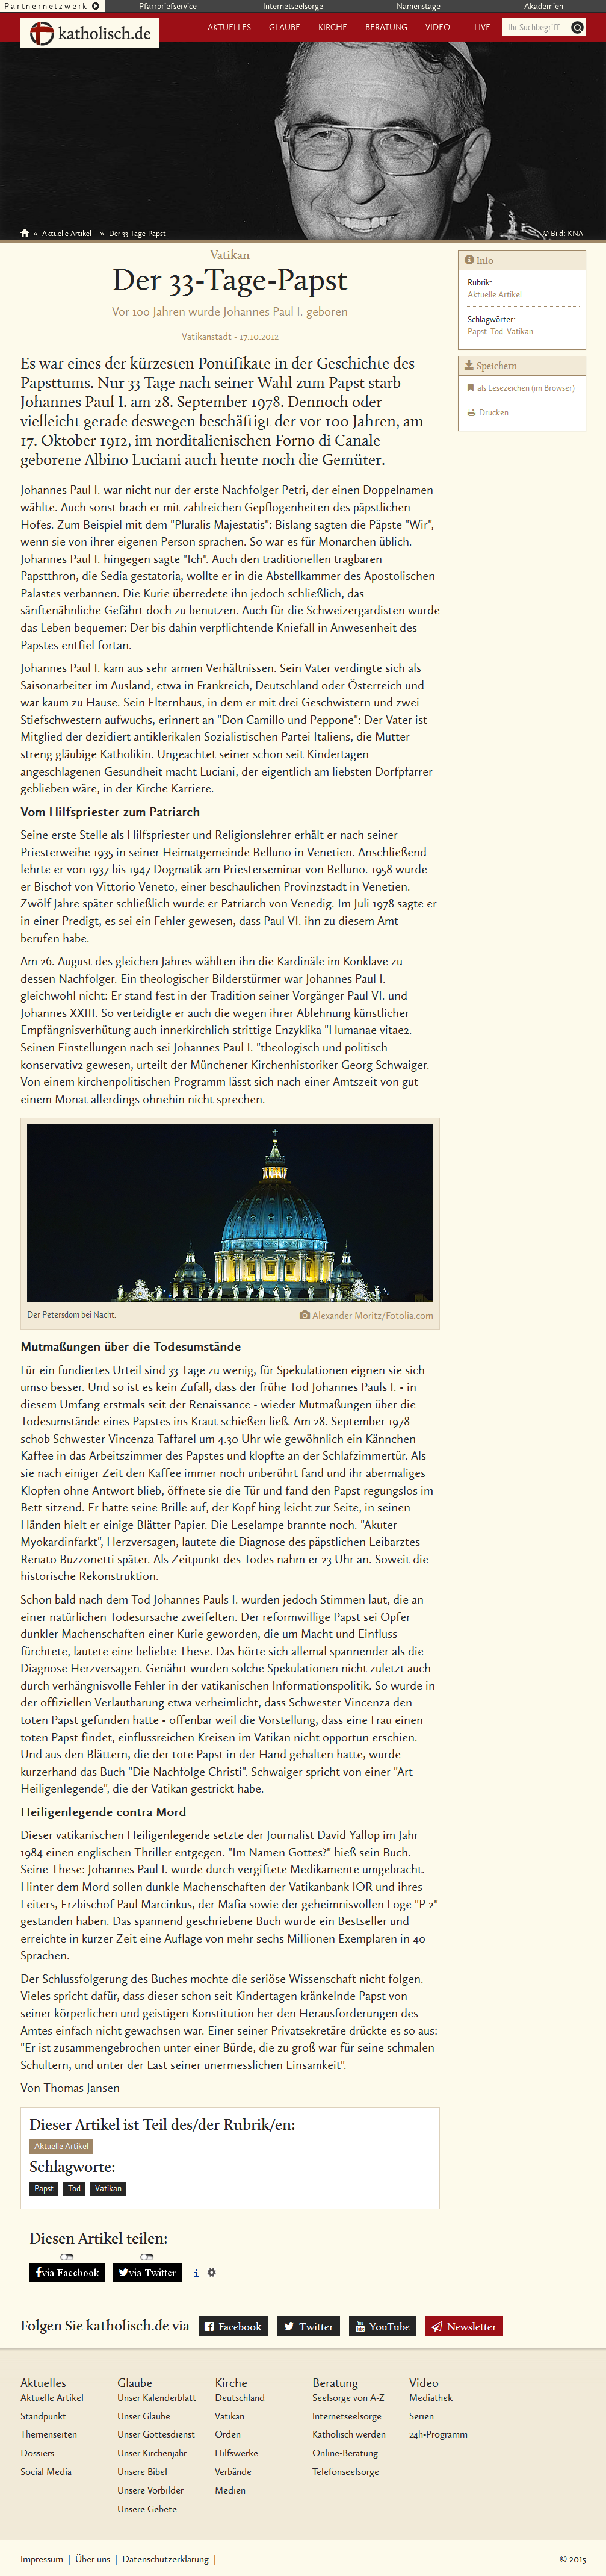 Click image for larger version.  Name:Der 33 tage Papst.png Views:48 Size:812.8 KB ID:14866